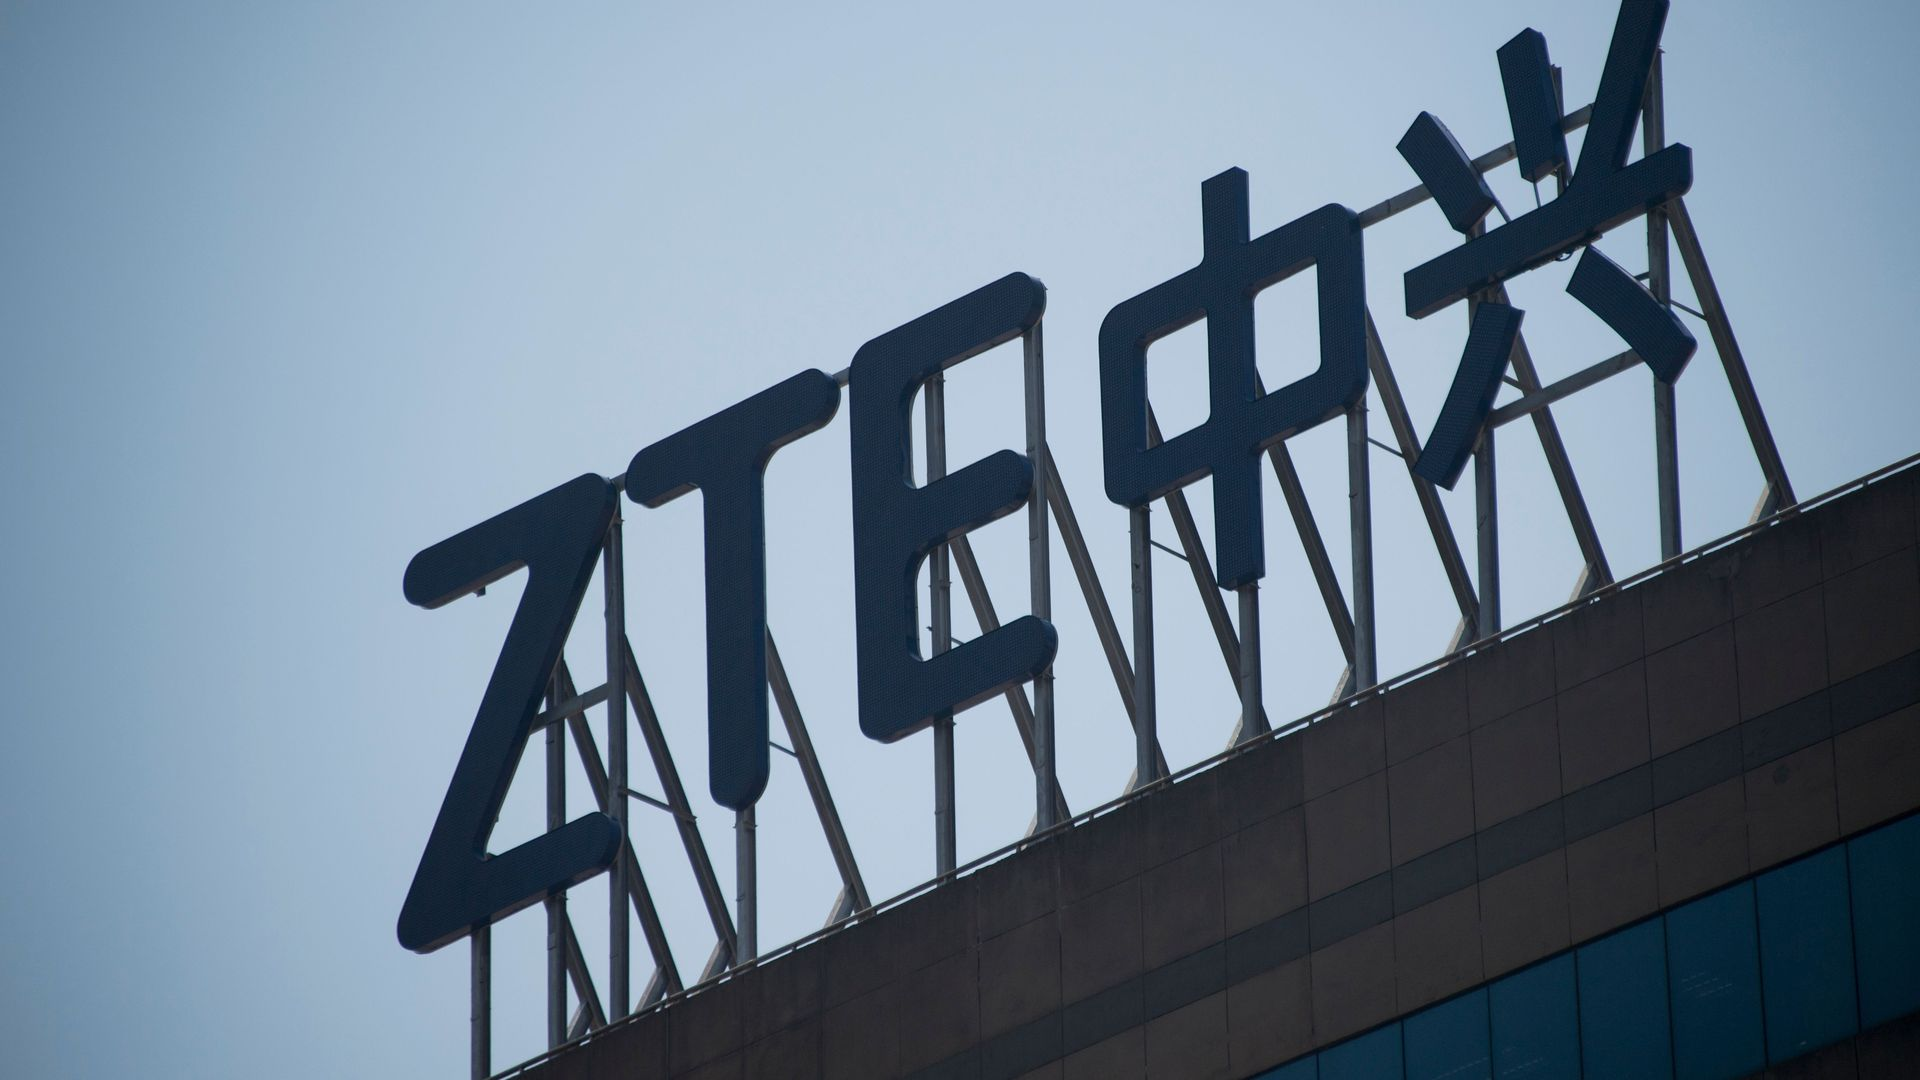 ZTE sign framed against a blue sky